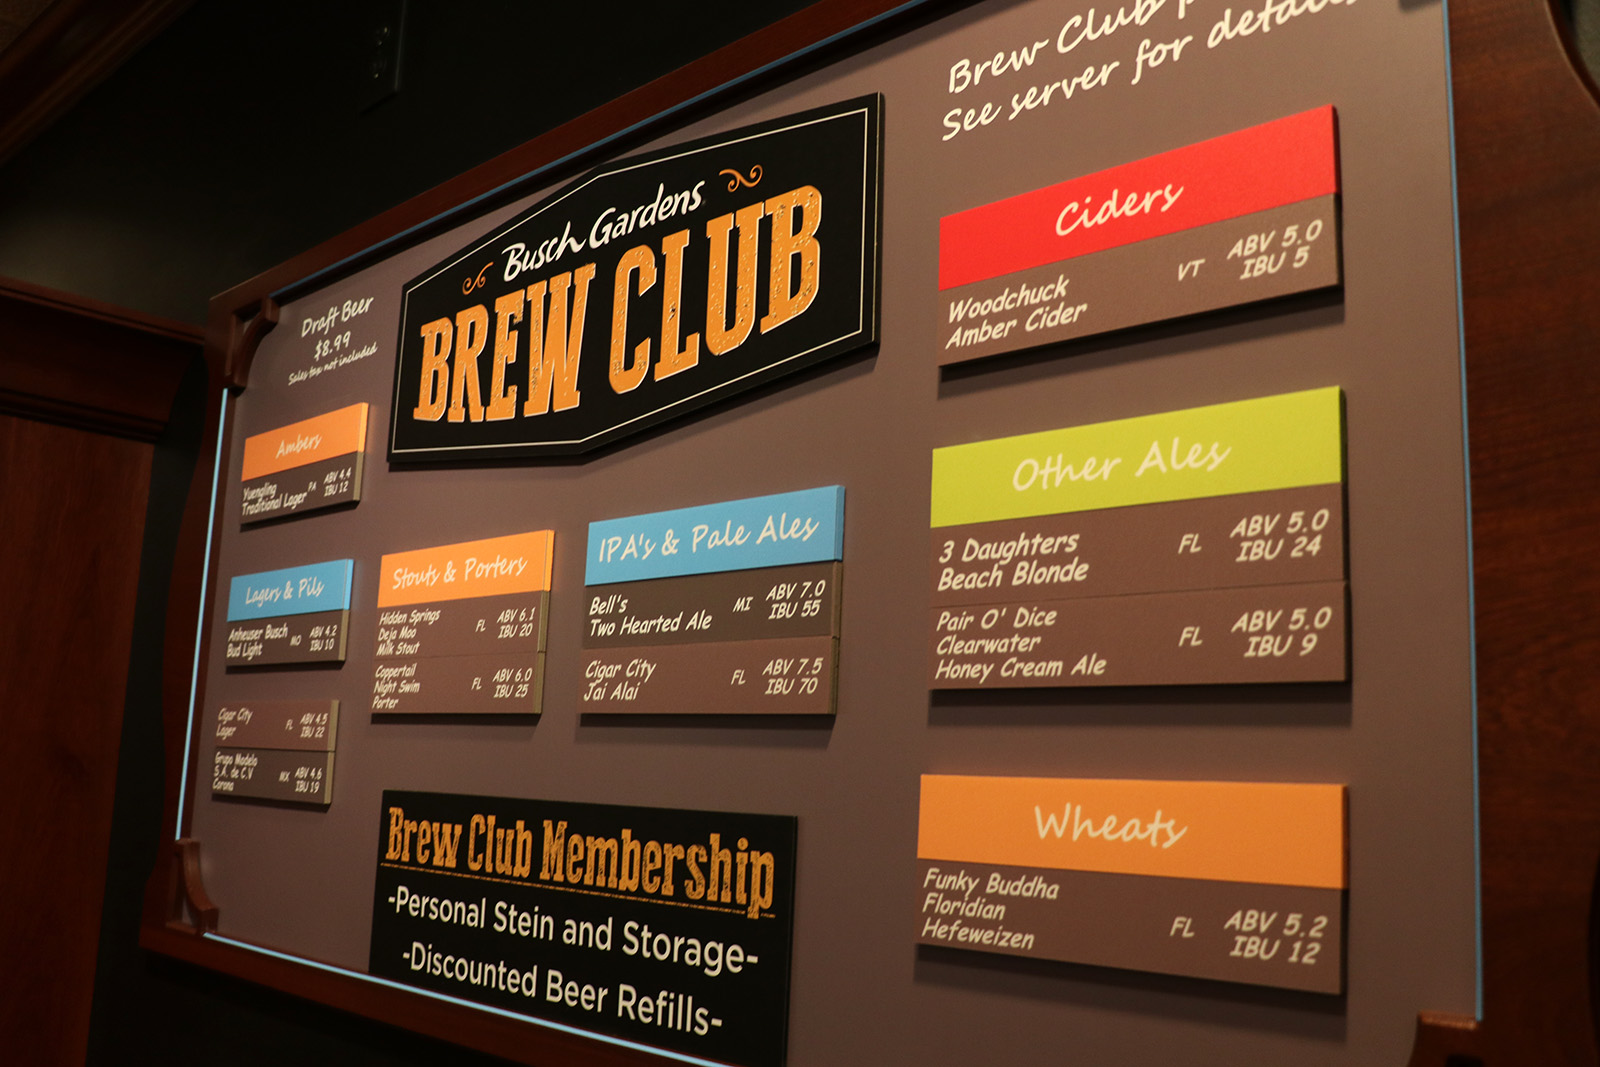 Beer is Back at Busch Gardens Tampa; new Brew Club and Bier Fest ...